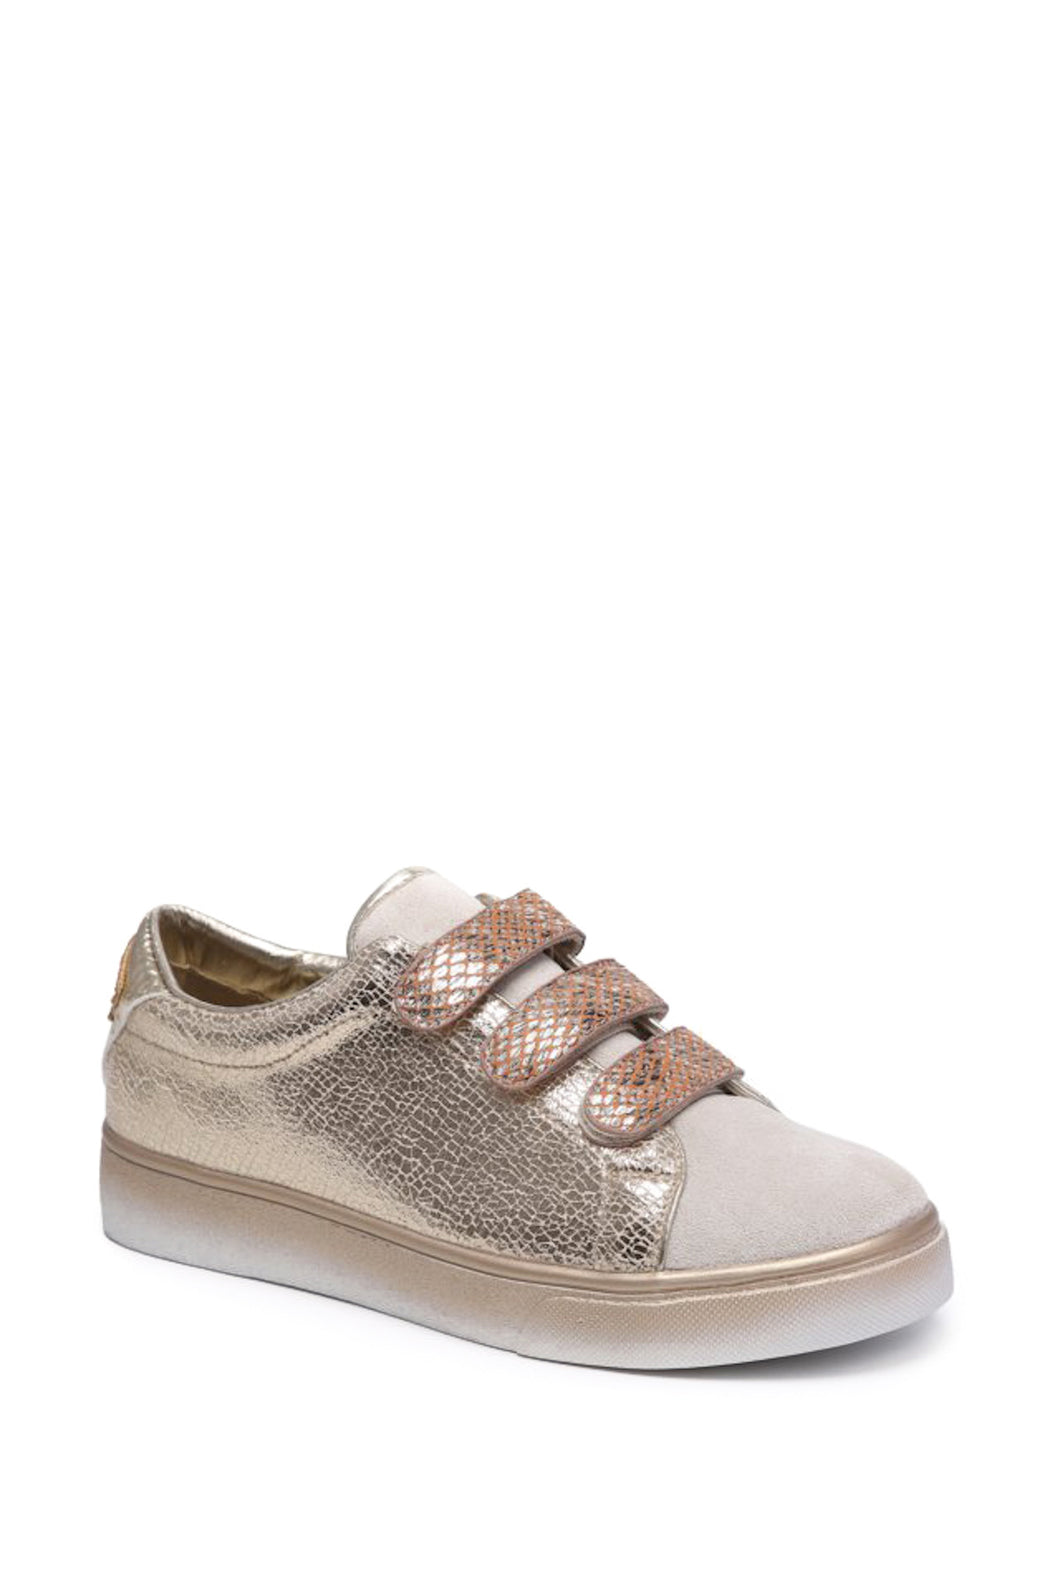 Lucile Crackle Effect Trainers